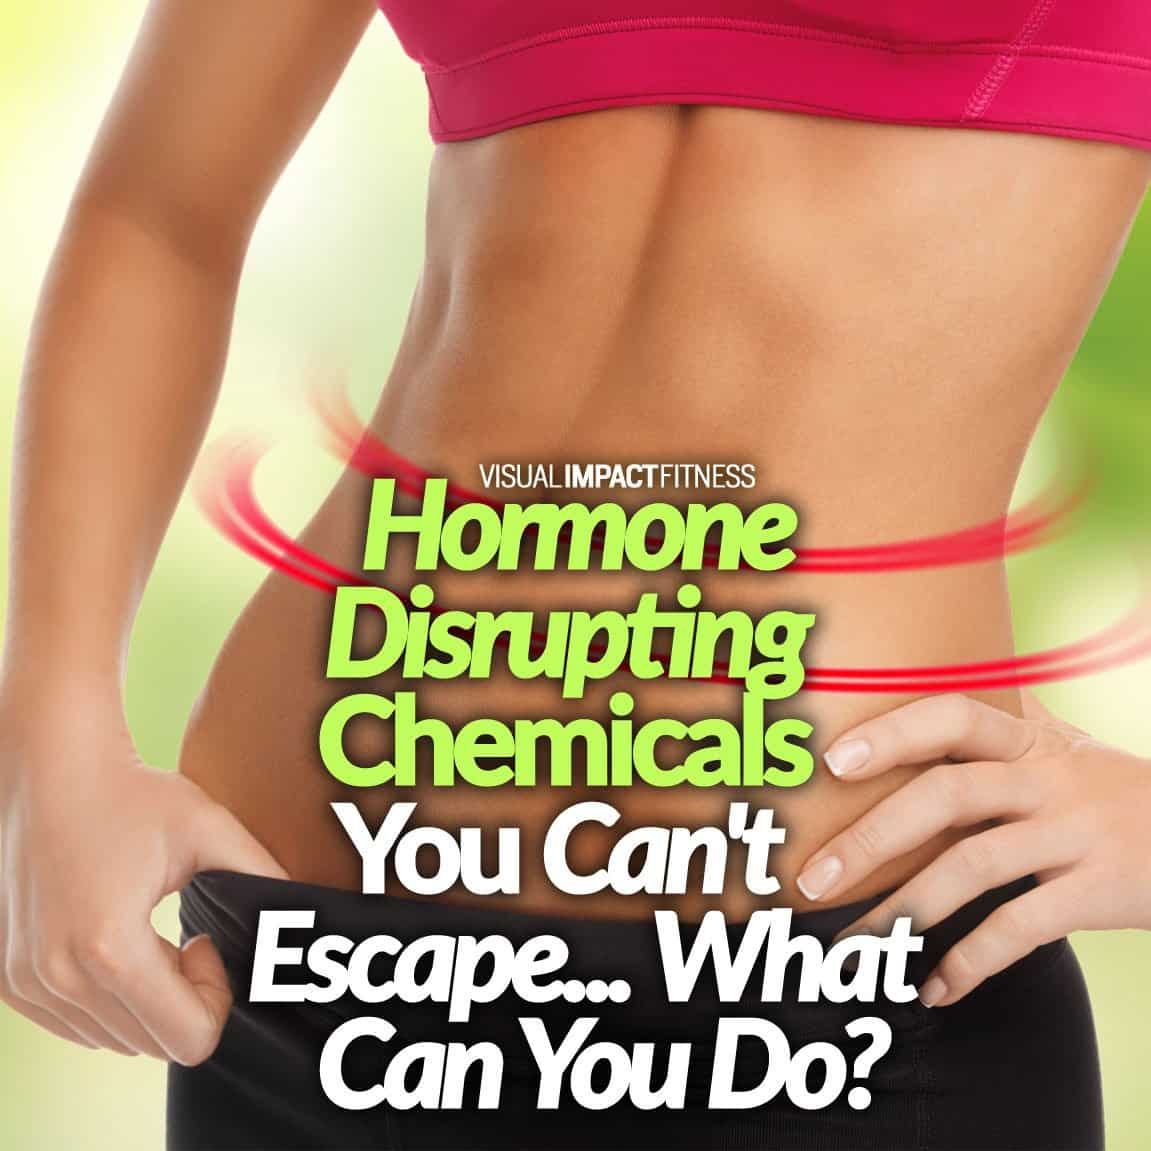 Hormone Disrupting Chemicals You Can't Escape - What Can You Do